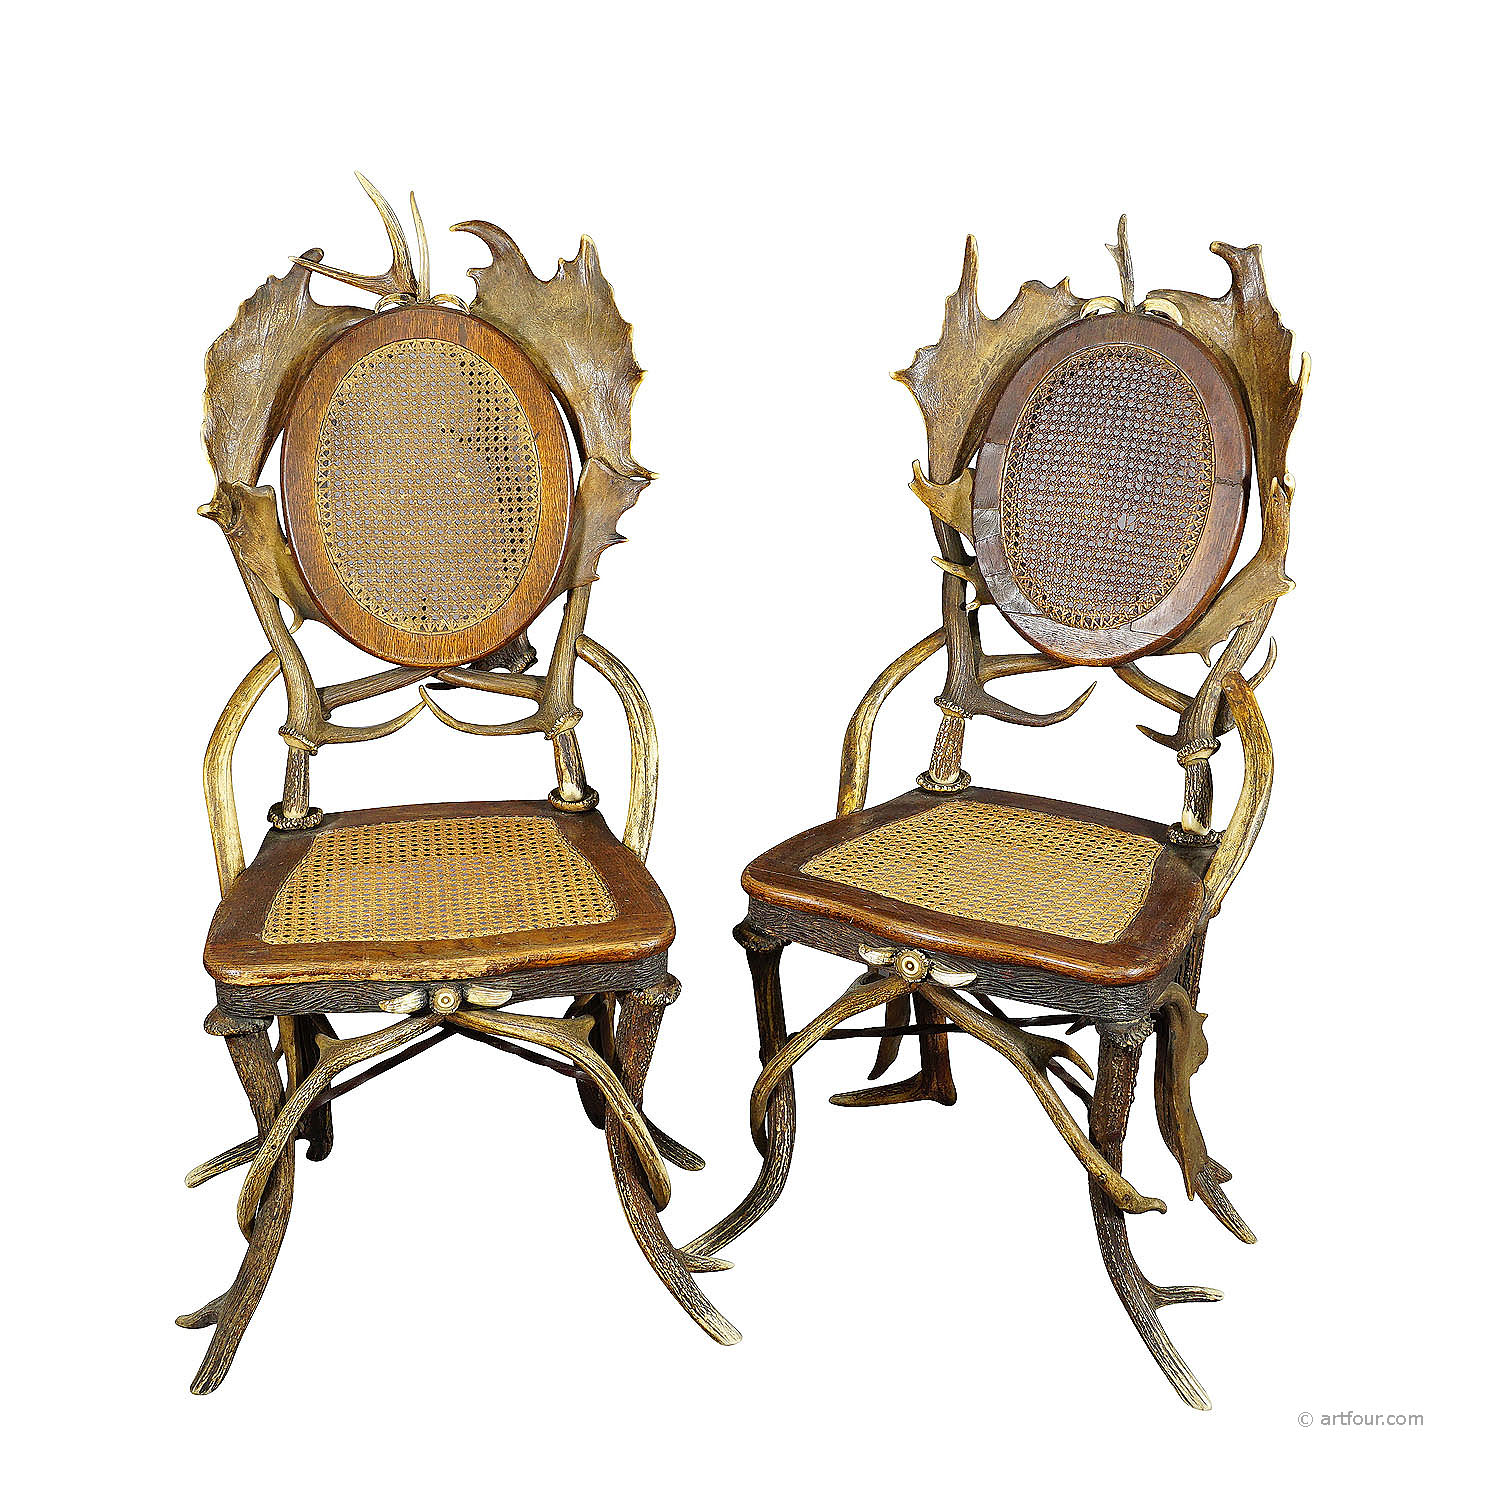 a pair antique rustic antler parlor chairs, germany ca. 1900